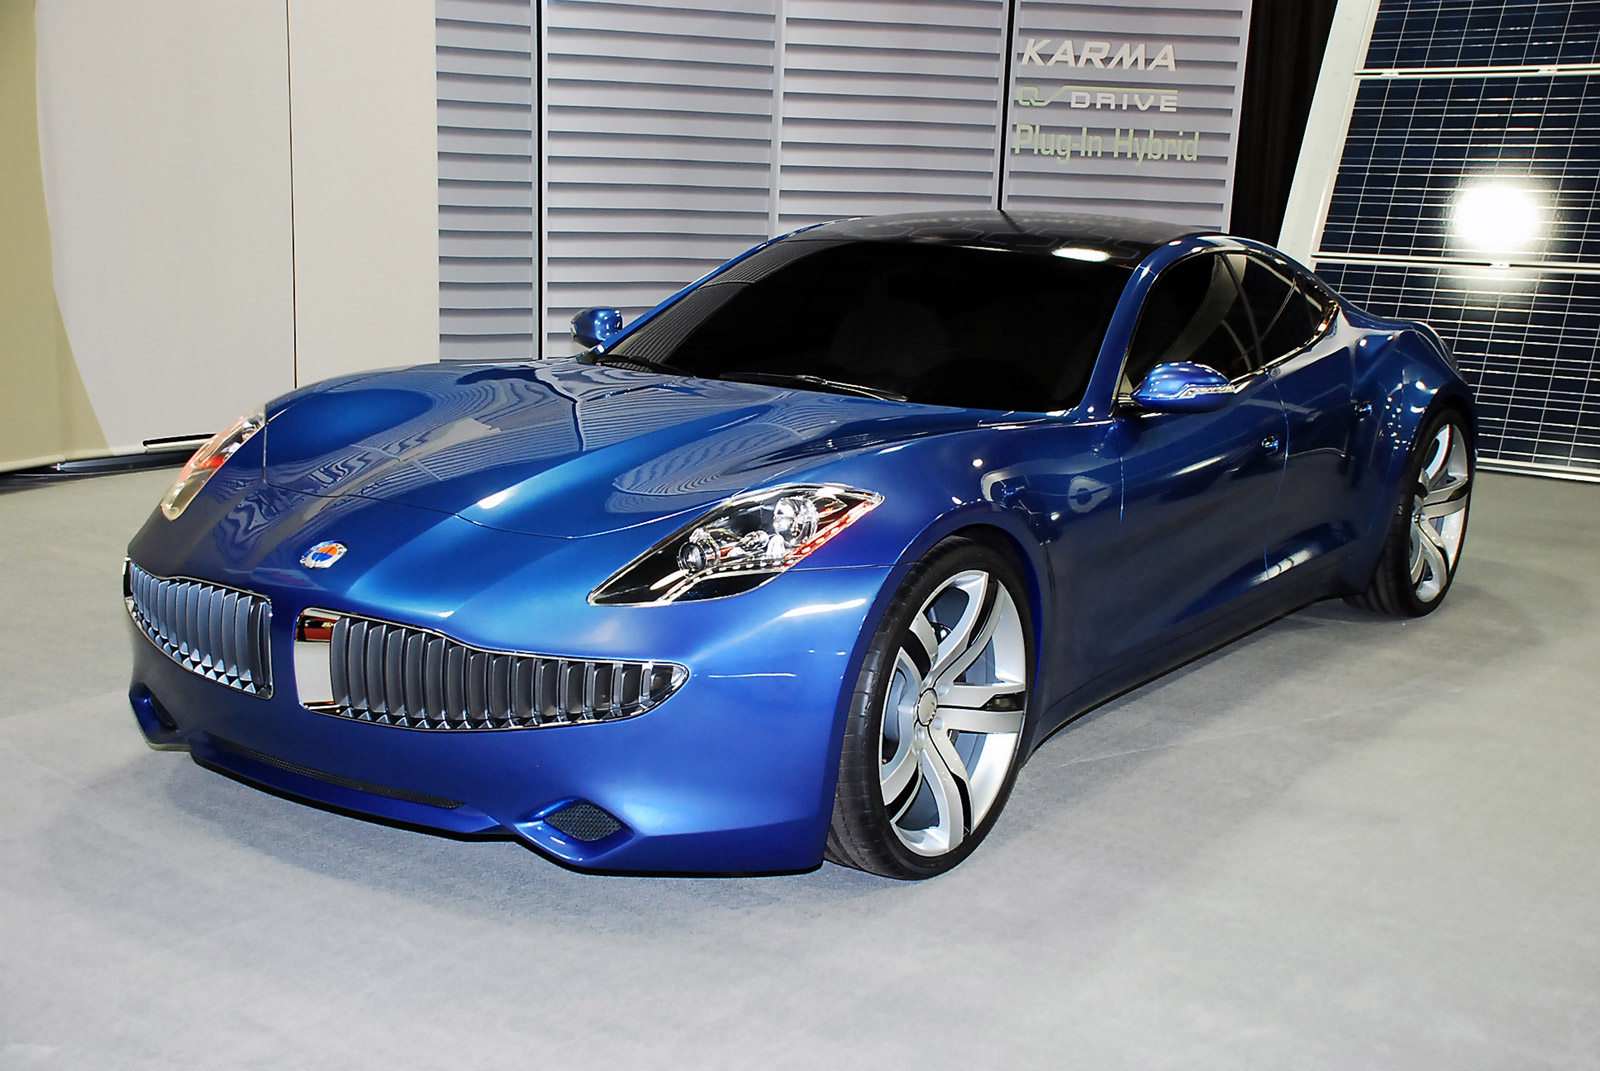 fisker karma hybrid car and electronic wallpaper. Black Bedroom Furniture Sets. Home Design Ideas